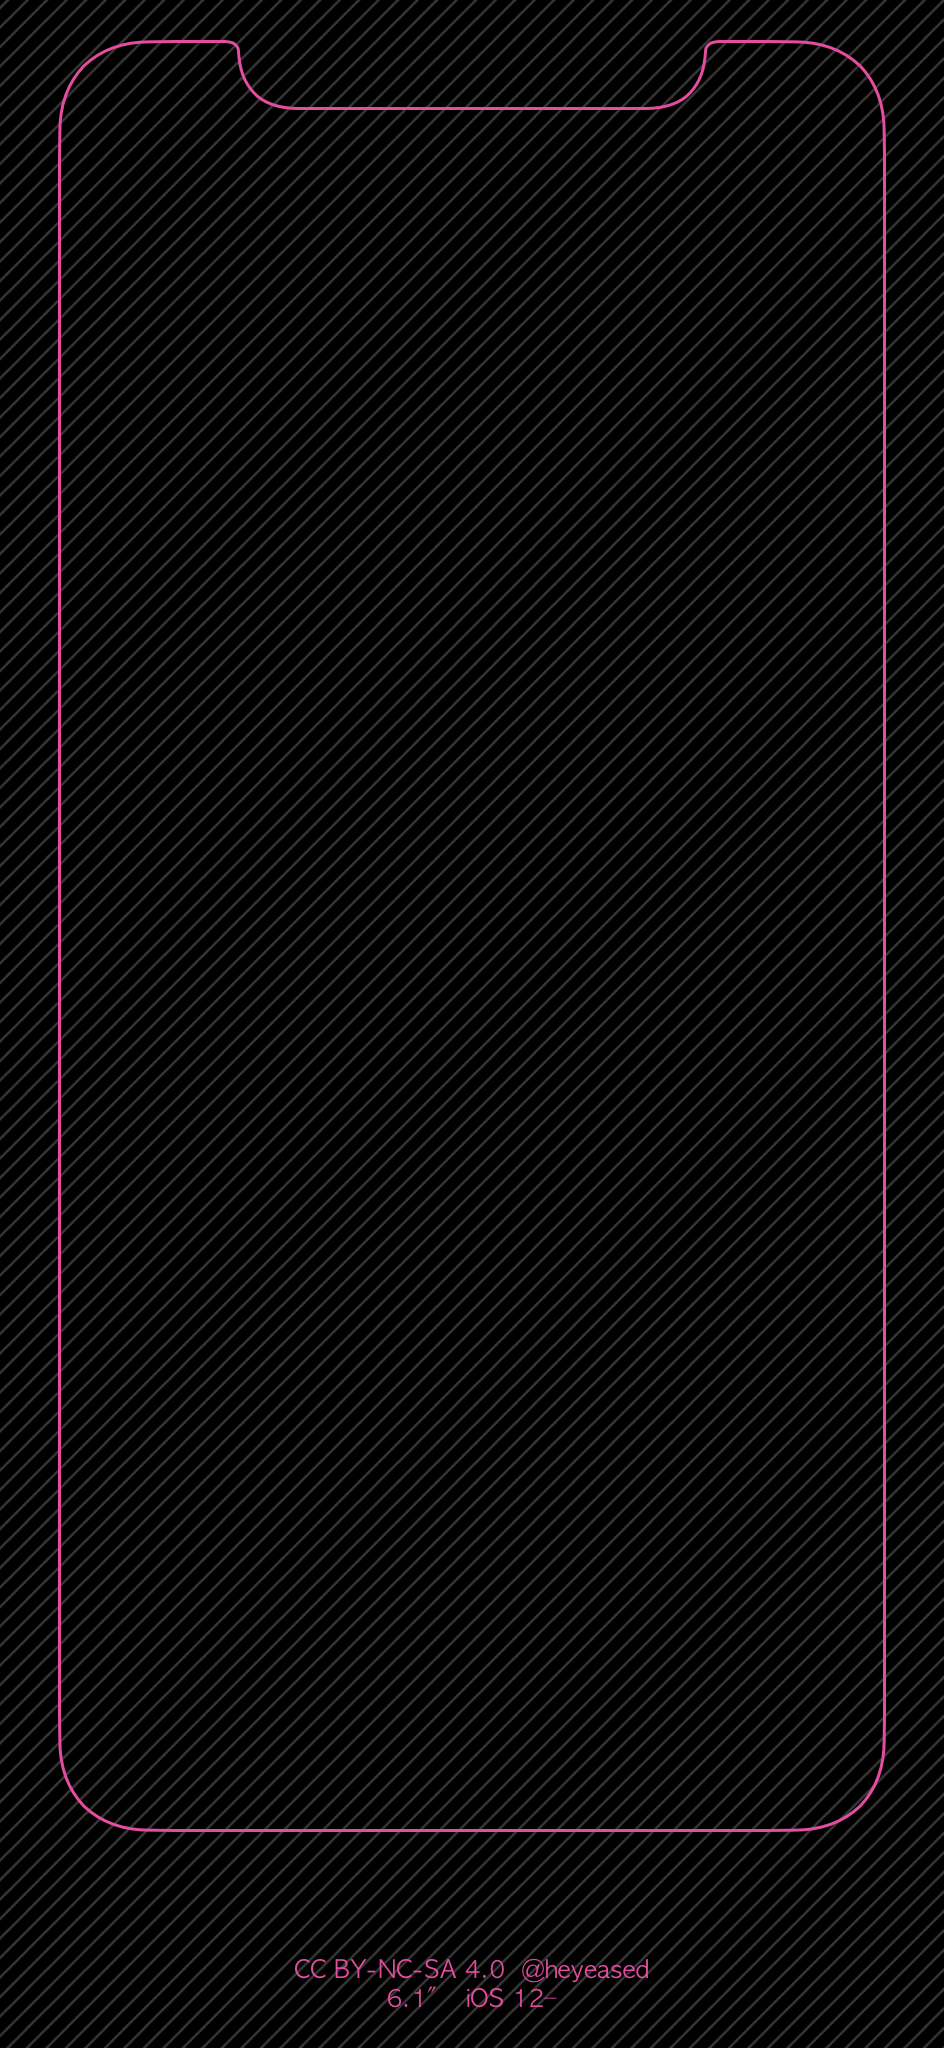 Iphone 11 Pro Border Wallpaper : iphone, border, wallpaper, IPhone, Border, Wallpapers, Wallpaper